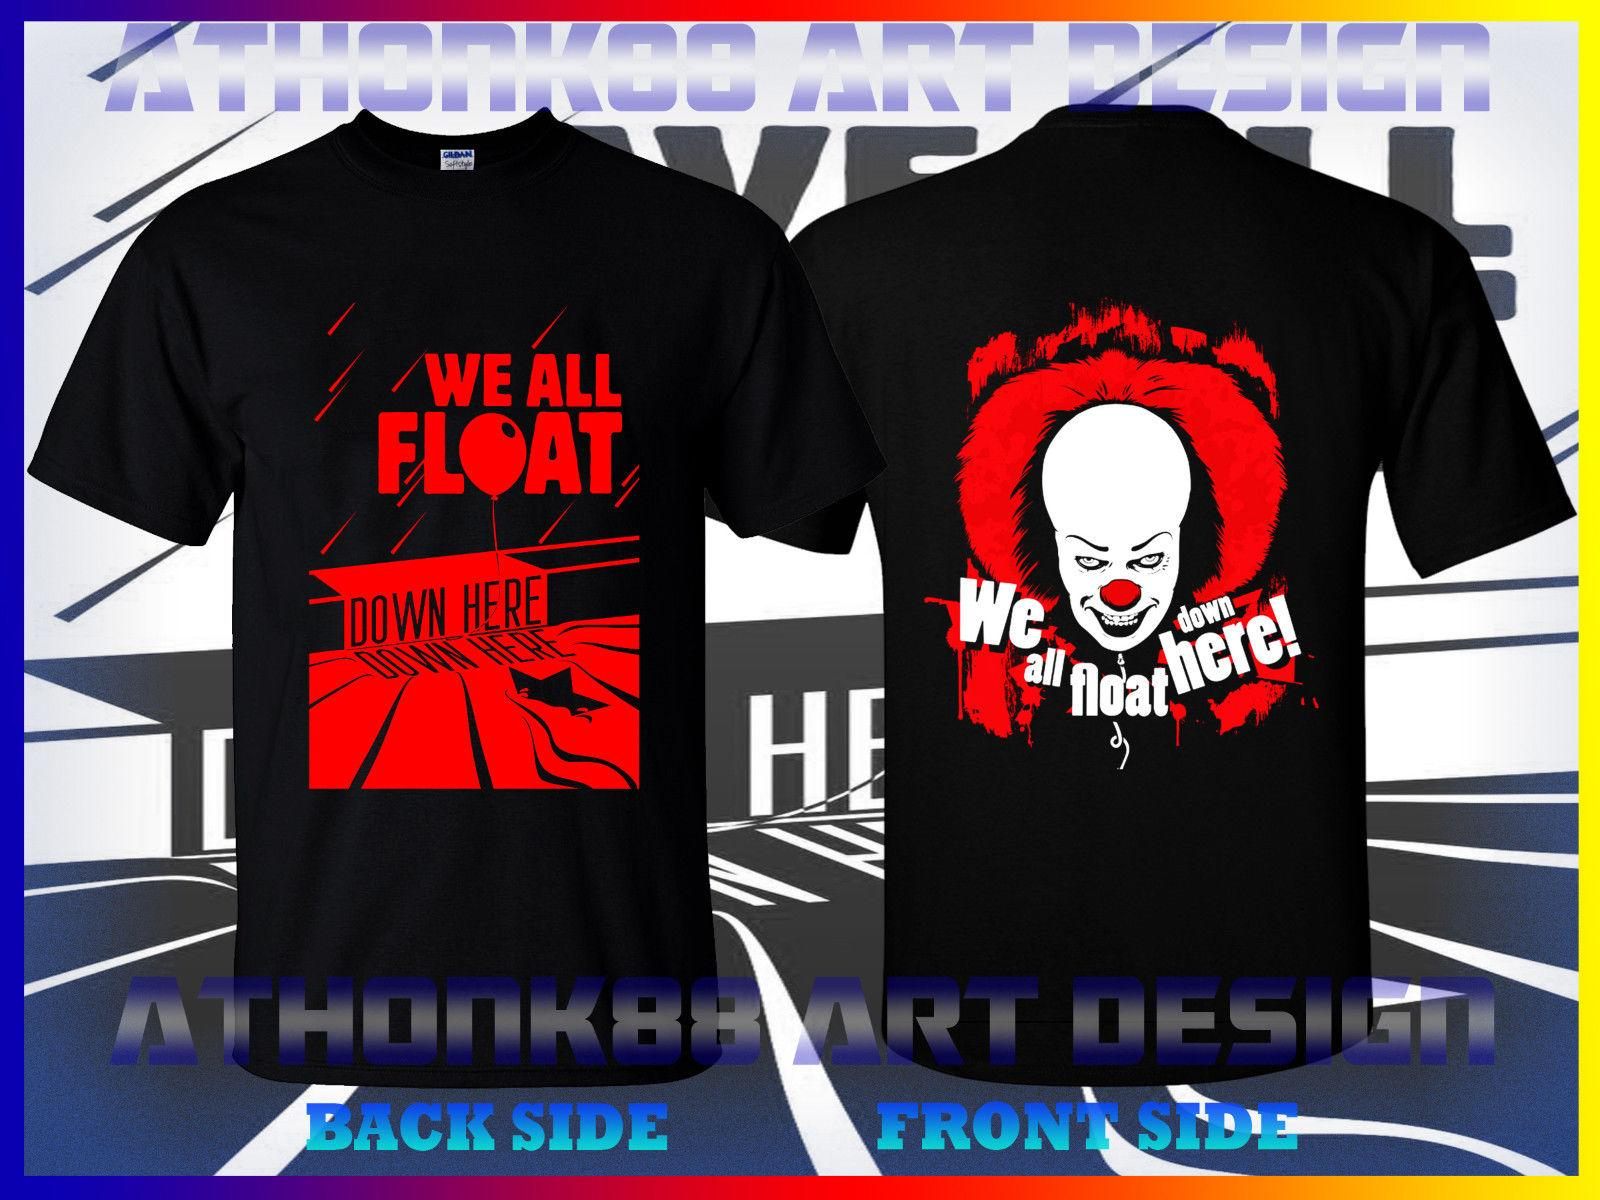 54c58f4a5ebe WE ALL FLOAT DOWN HERE CLOWN PENNYWISE HORROR STEPHEN KINGS T SHIRT Shirts  Designer Designer White T Shirts From Foryouboutique, $11.01| DHgate.Com